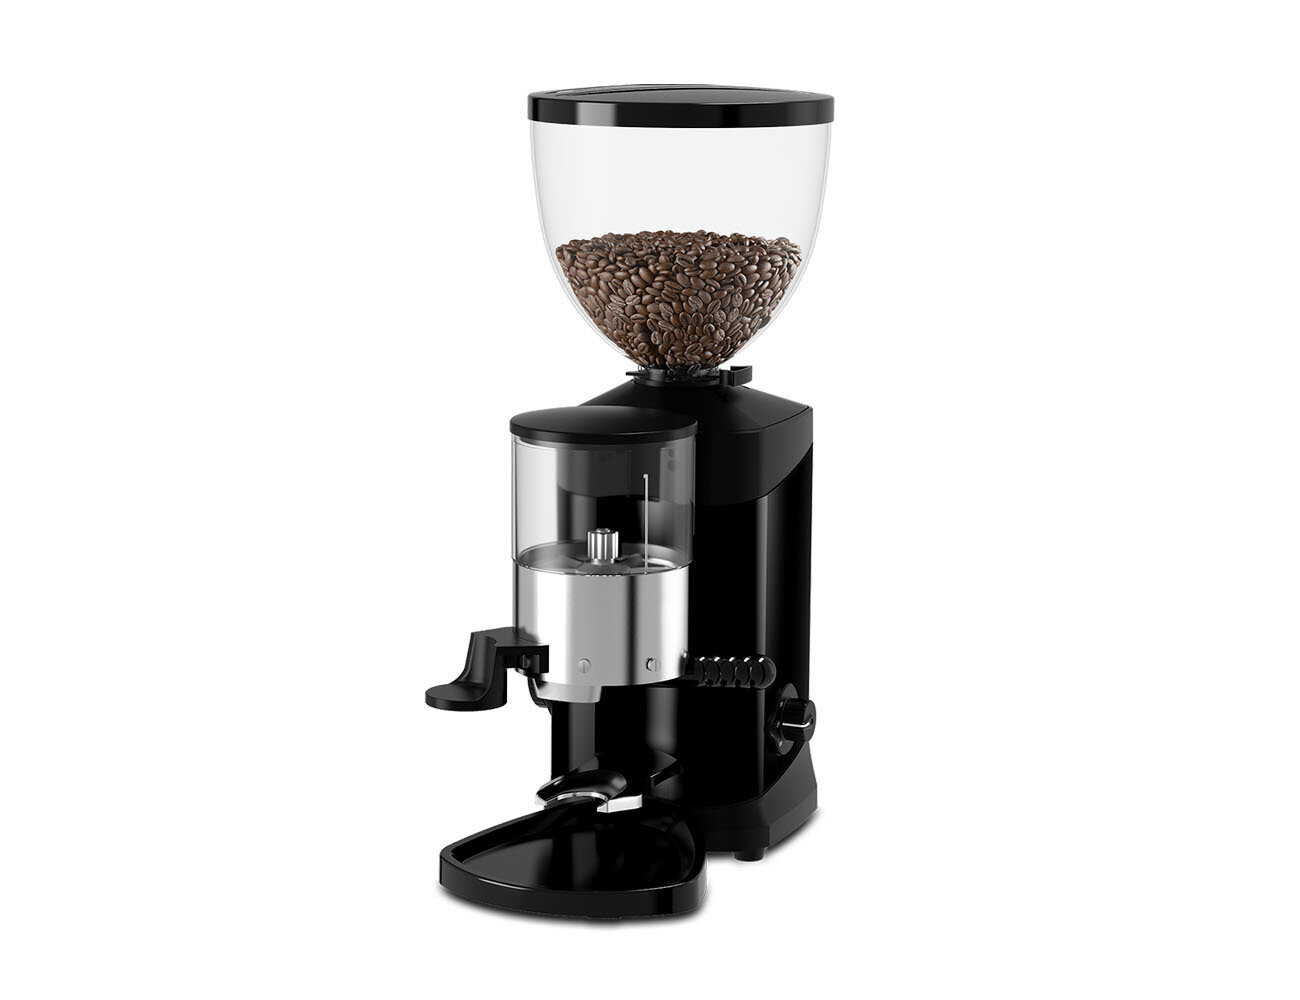 Hey Cafe: HC-598 Titan I